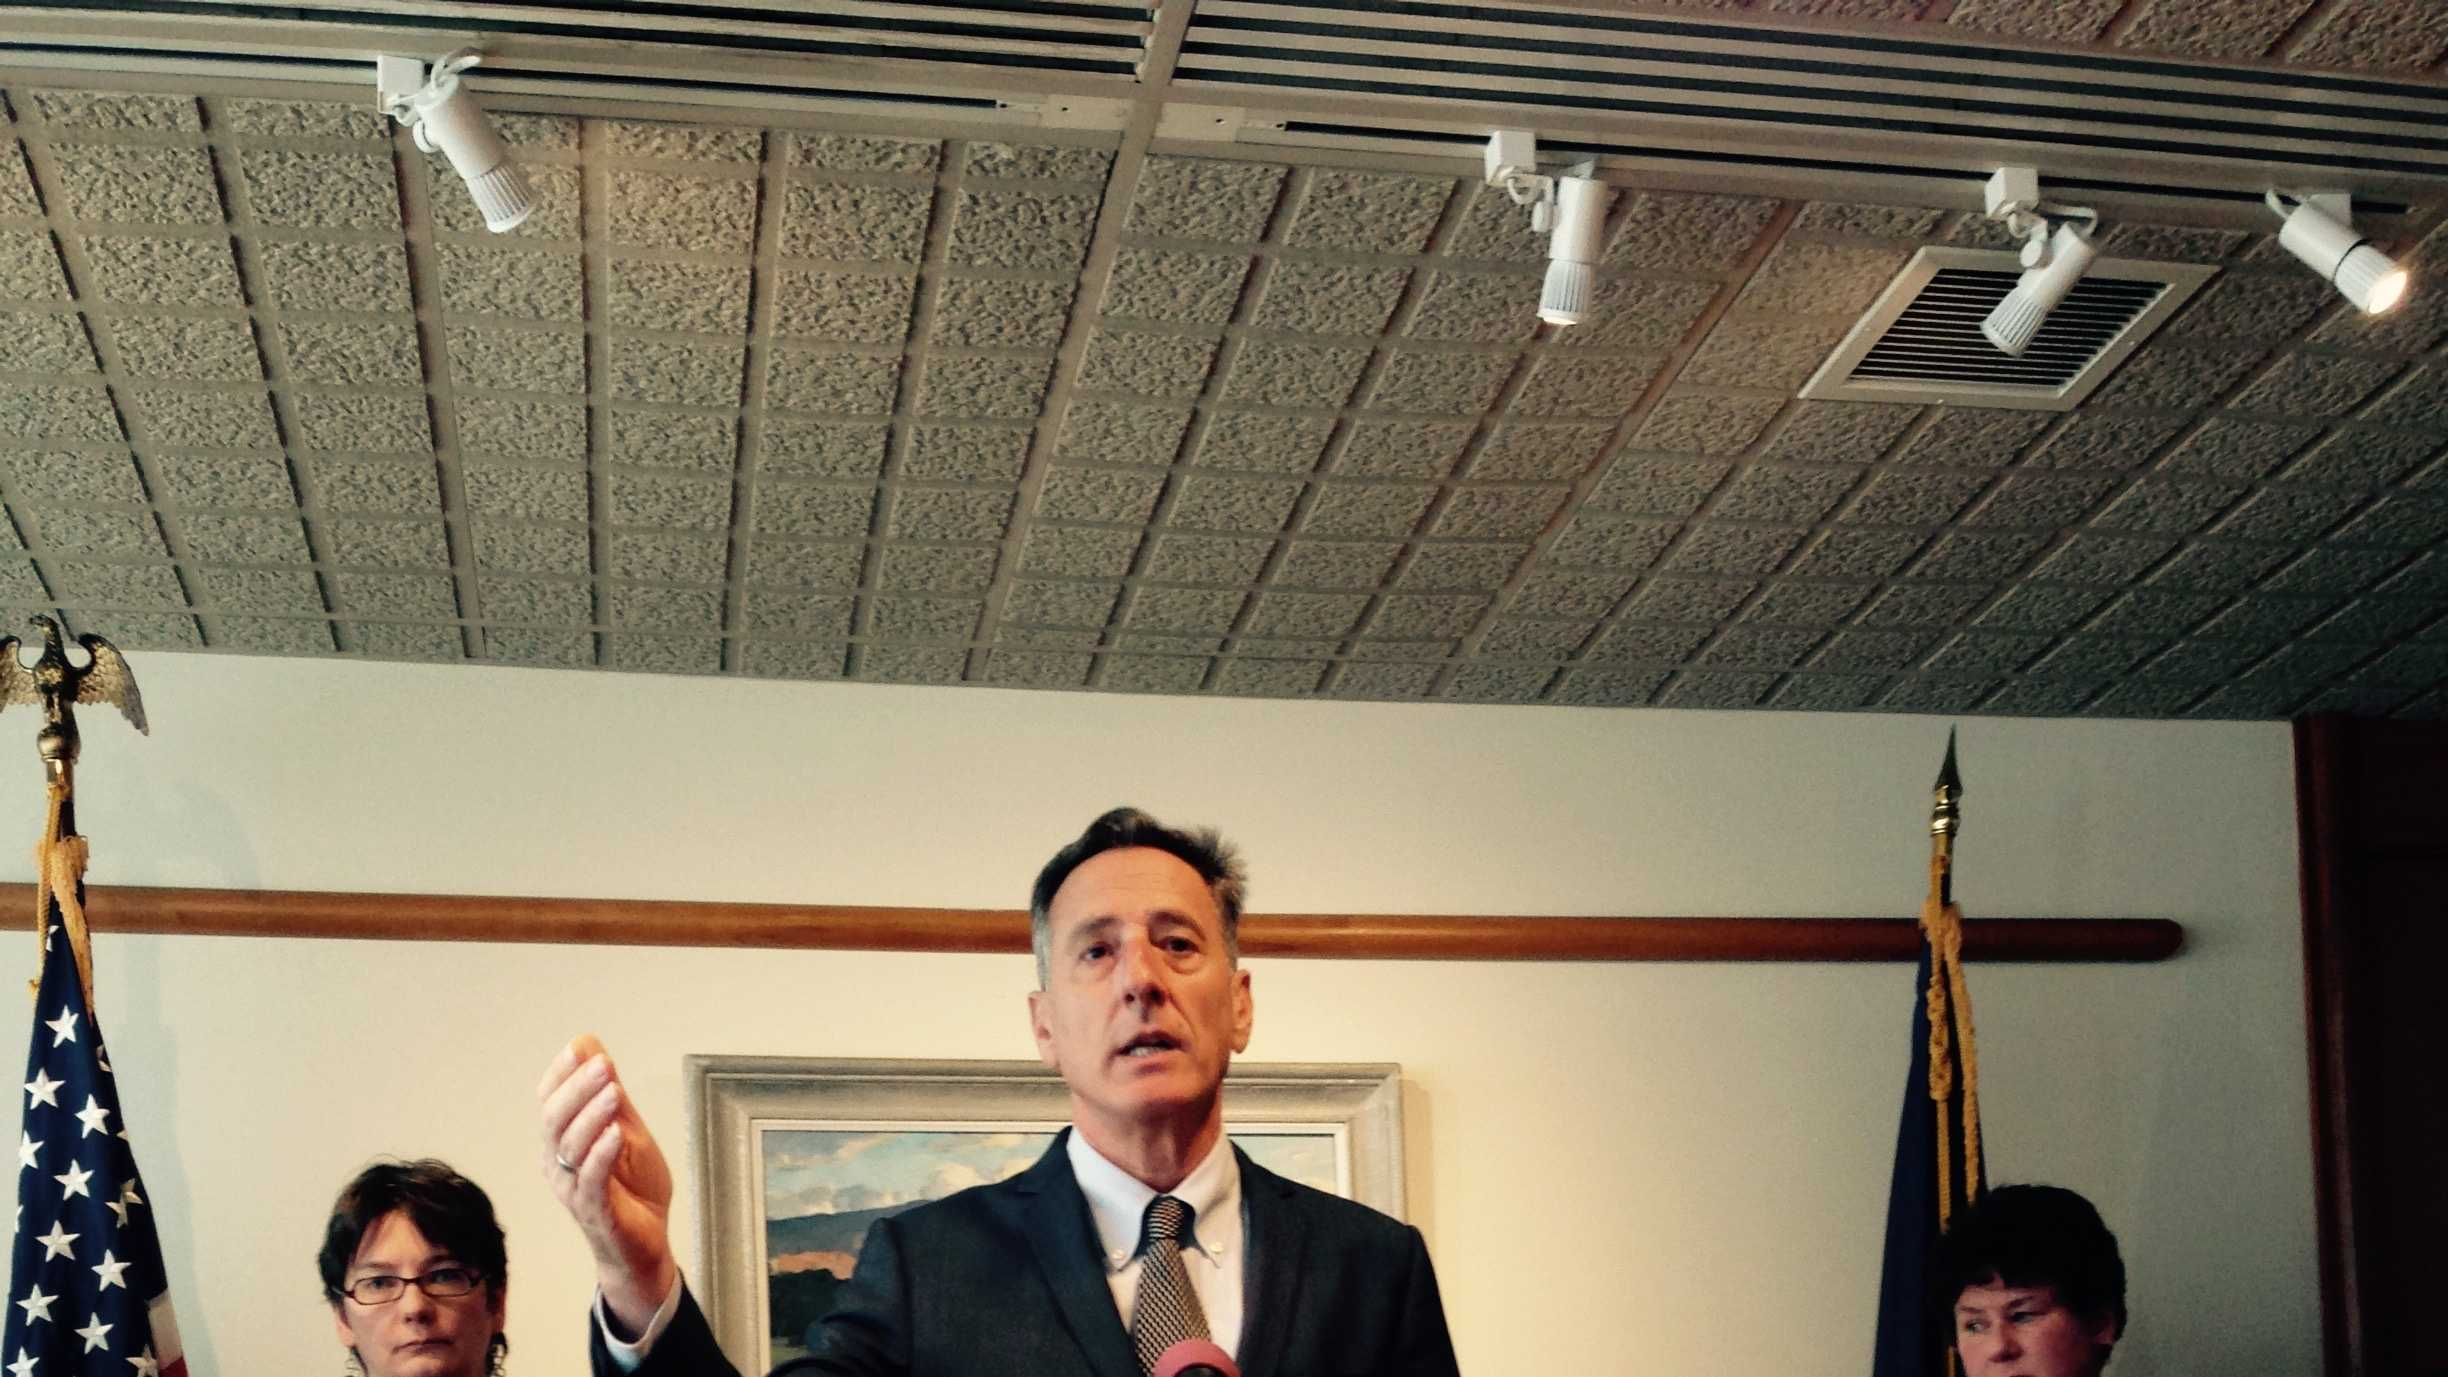 Gov. Peter Shumlin speaks at a news conference Monday in Montpelier and endorsed a constitutional amendment changing how Vermont elects the governor.